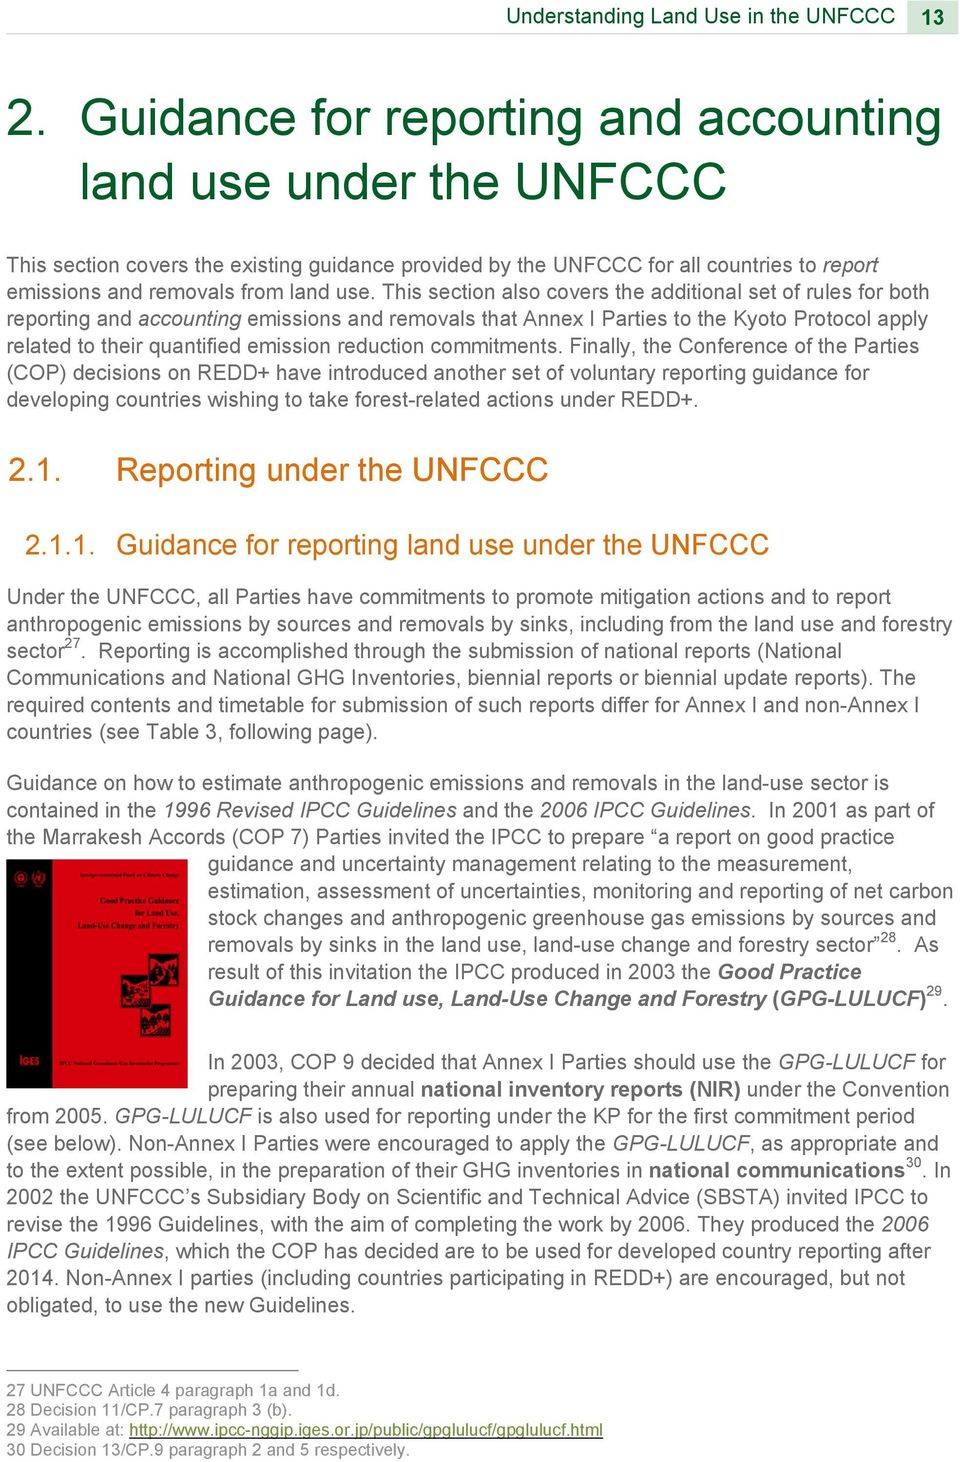 This section also covers the additional set of rules for both reporting and accounting emissions and removals that Annex I Parties to the Kyoto Protocol apply related to their quantified emission